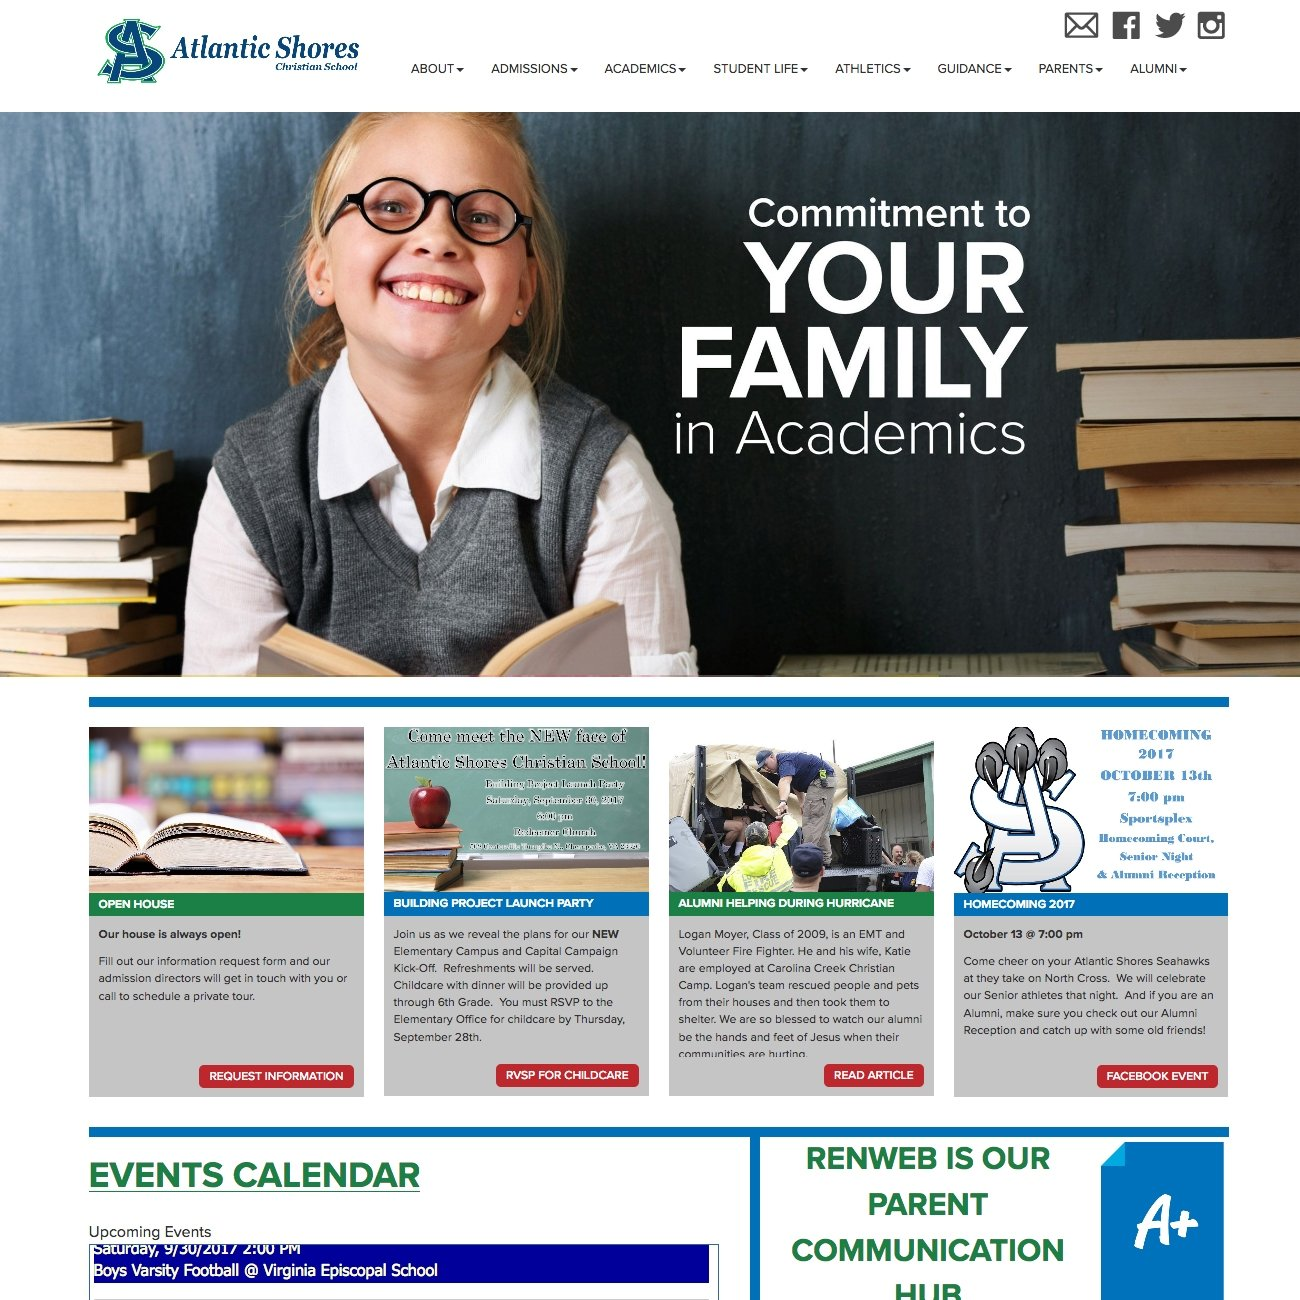 picture of Atlantic Shores home page